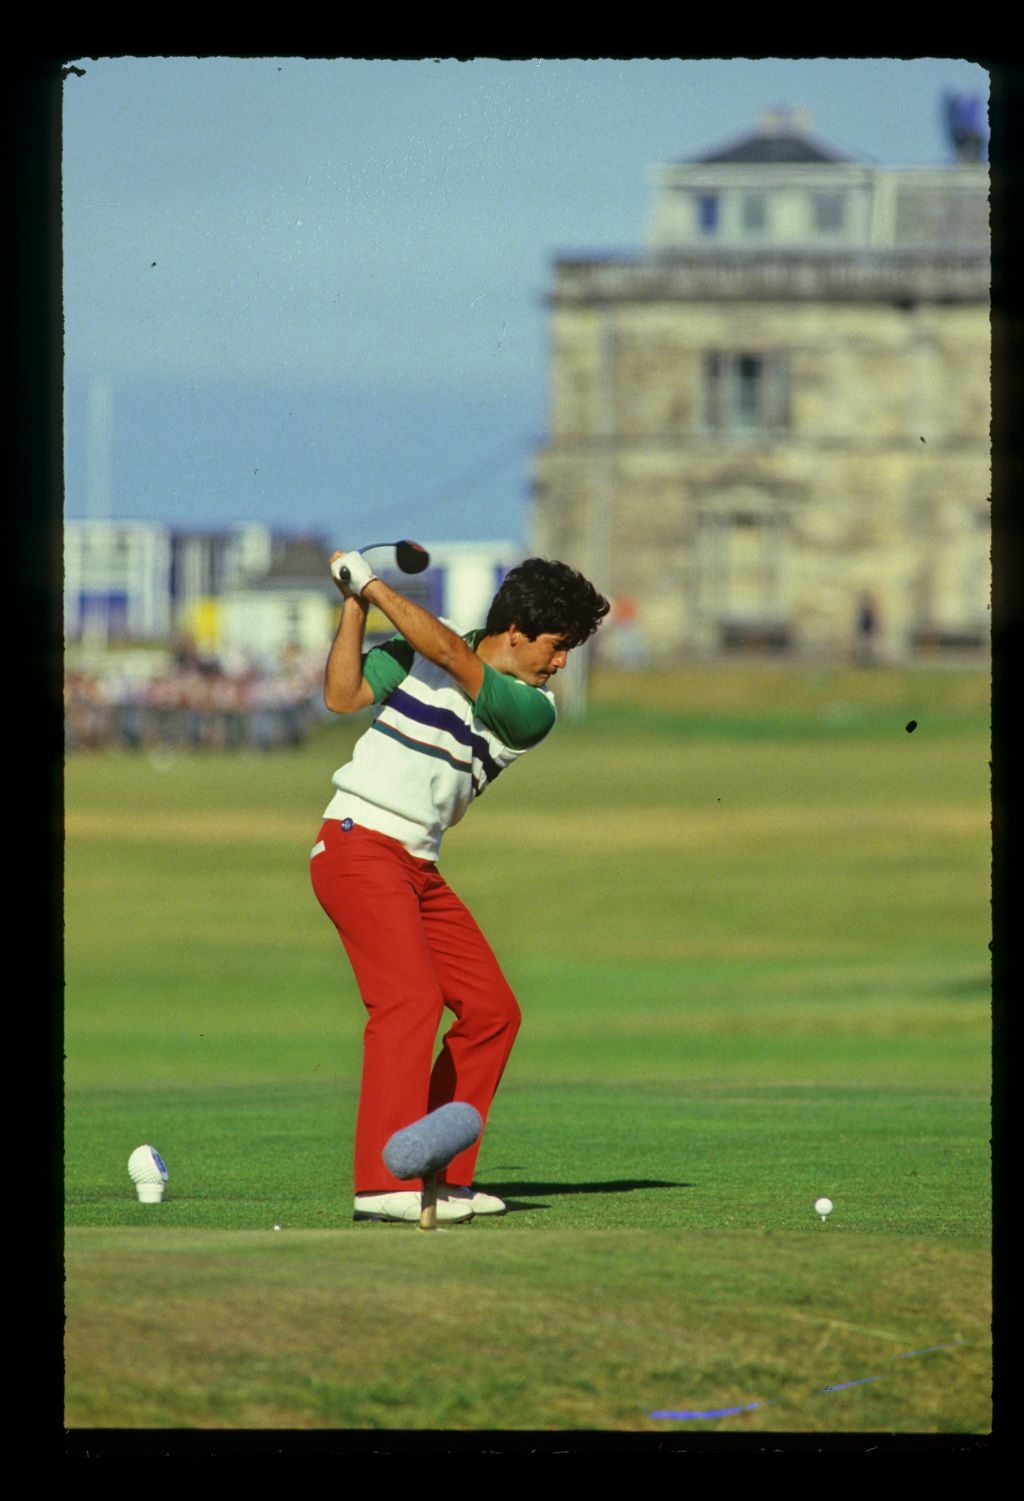 South African golfer David Frost tees off on the 18th of the Old Course at the 1991 Dunhill Cup with the R&A Clubhouse in the background